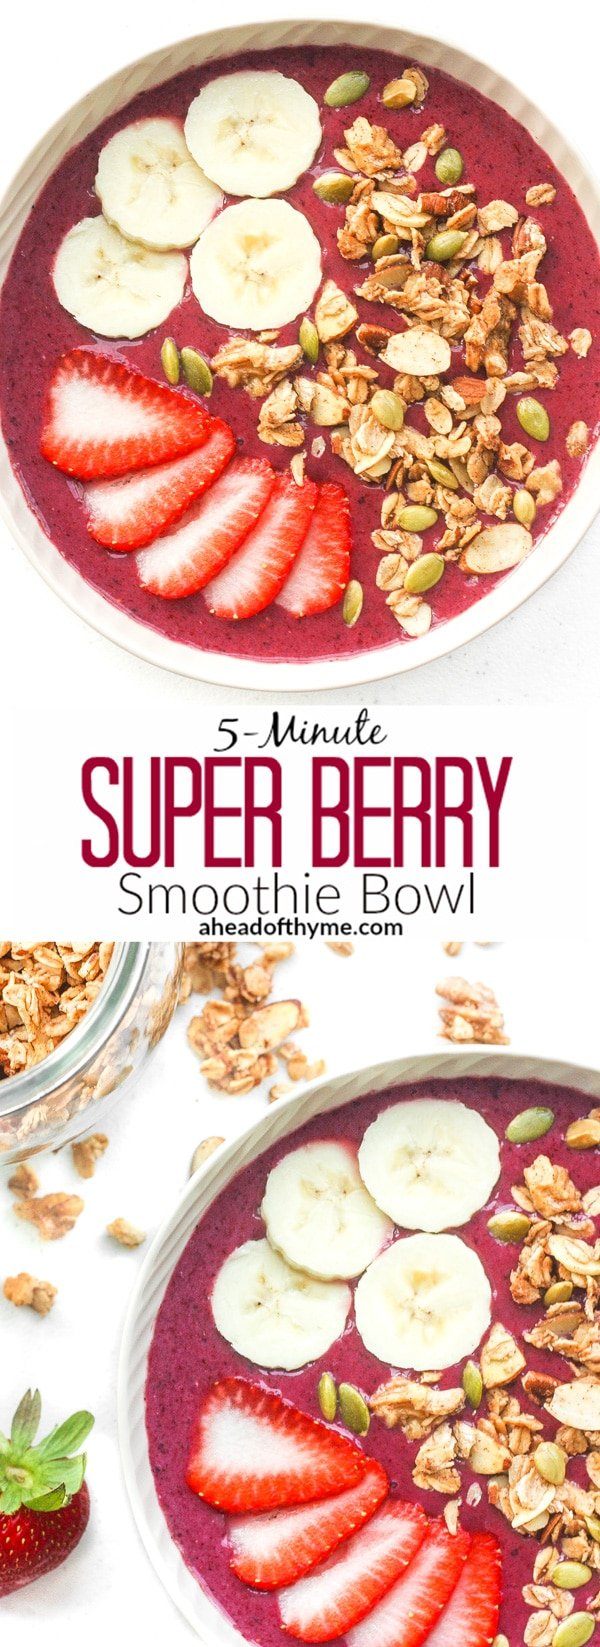 5-Minute Super Berry Smoothie Bowl: Quick and easy, 5-minute super berry smoothie bowl is loaded with strawberries, raspberries, blueberries and banana and topped with customizable toppings | aheadofthyme.com